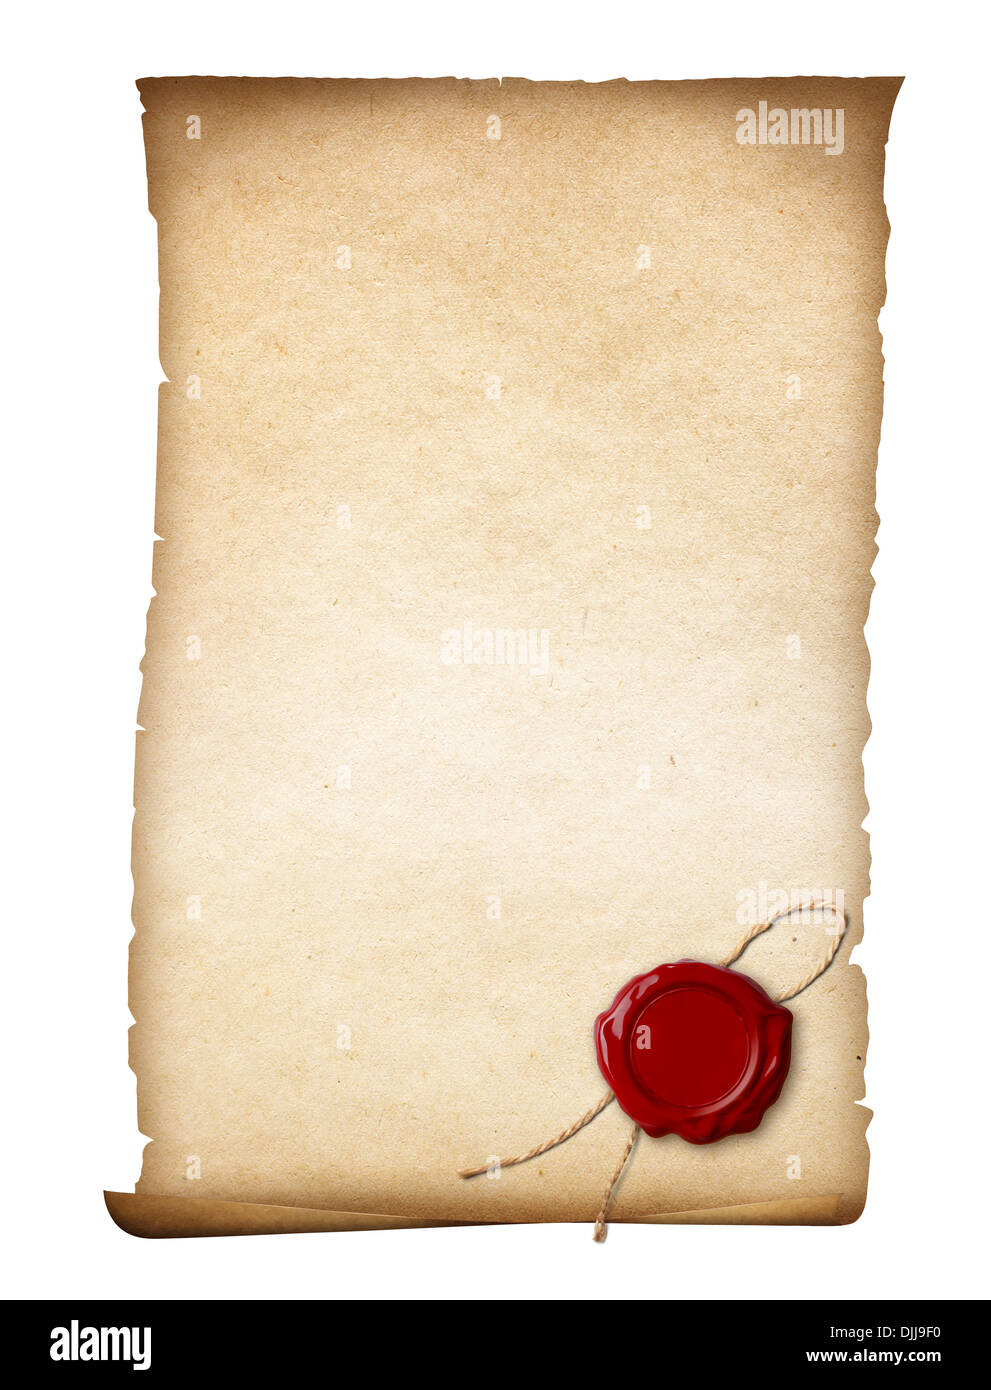 parchment or old paper with wax seal isolated - Stock Image